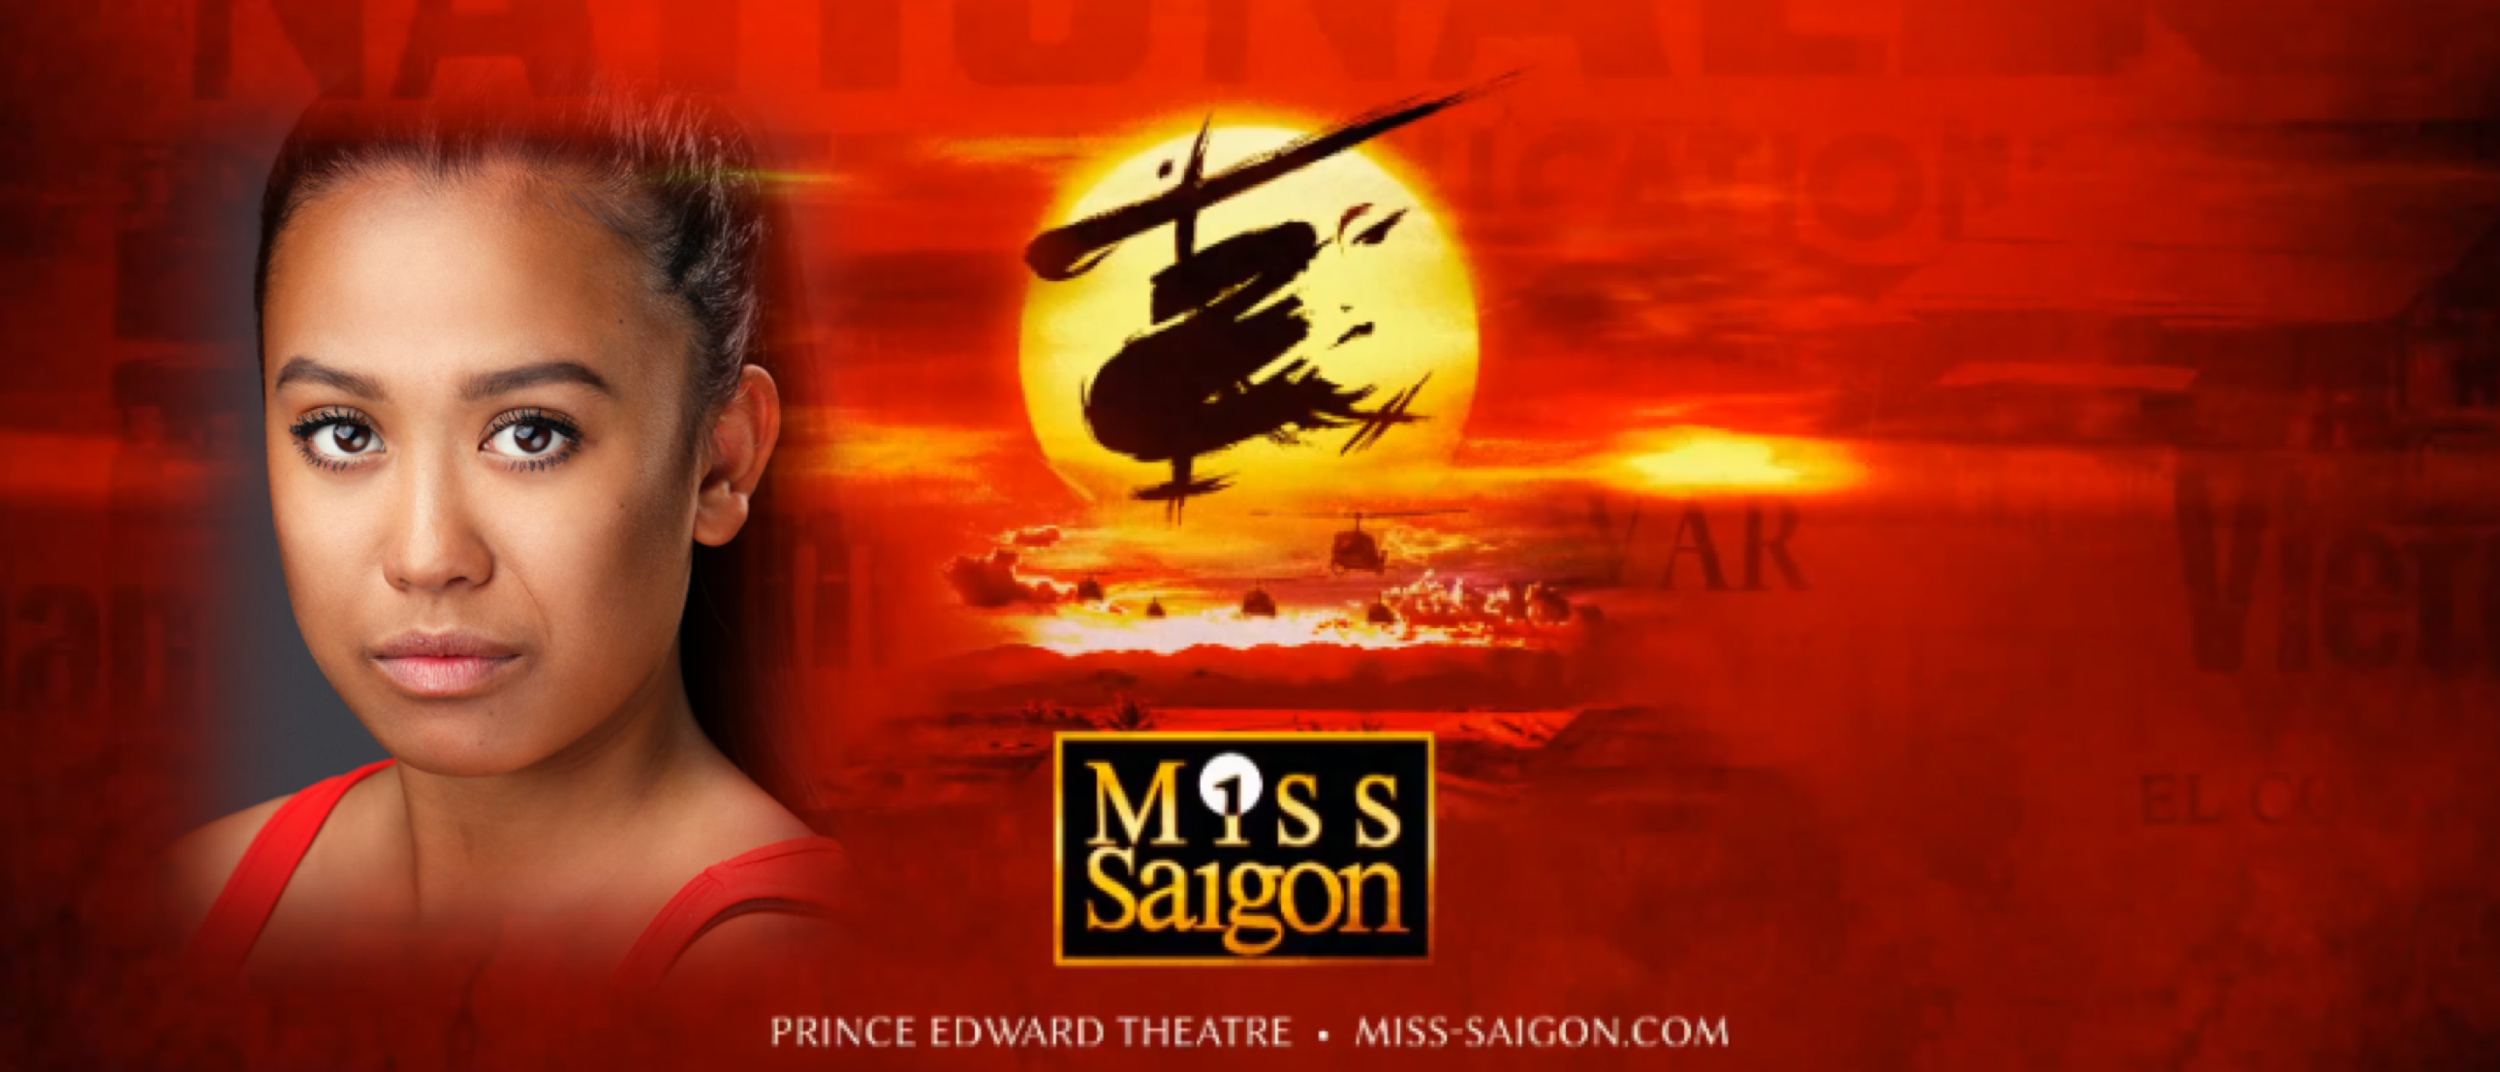 Katherine Picar can be seen on the Prince Edward Theatre stage performing as ensemble in Cameron MacKintosh's Miss Saigon